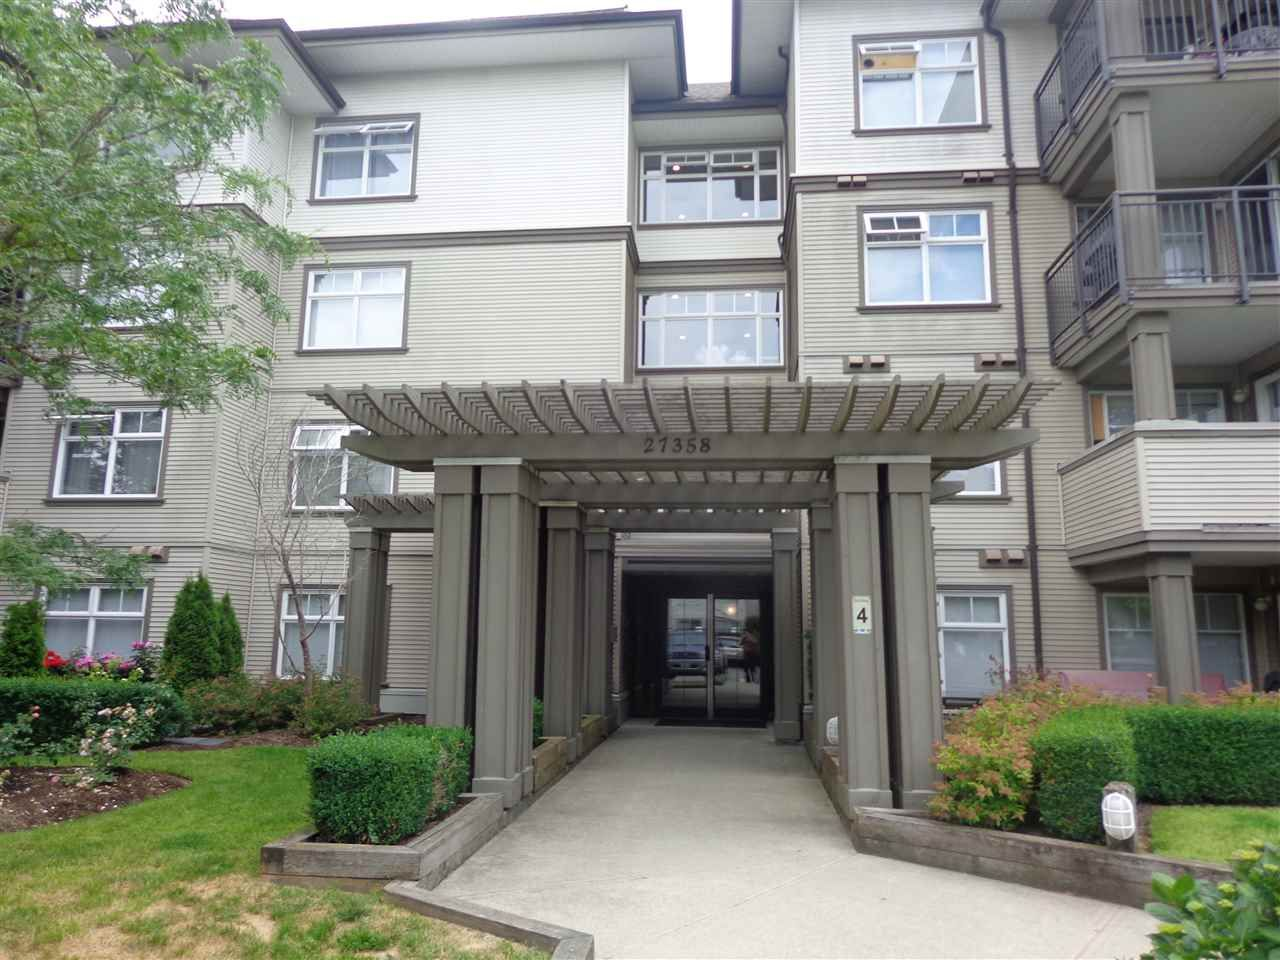 """Main Photo: 240 27358 32 Avenue in Langley: Aldergrove Langley Condo for sale in """"Willowcreek Phase 4"""" : MLS®# R2385454"""